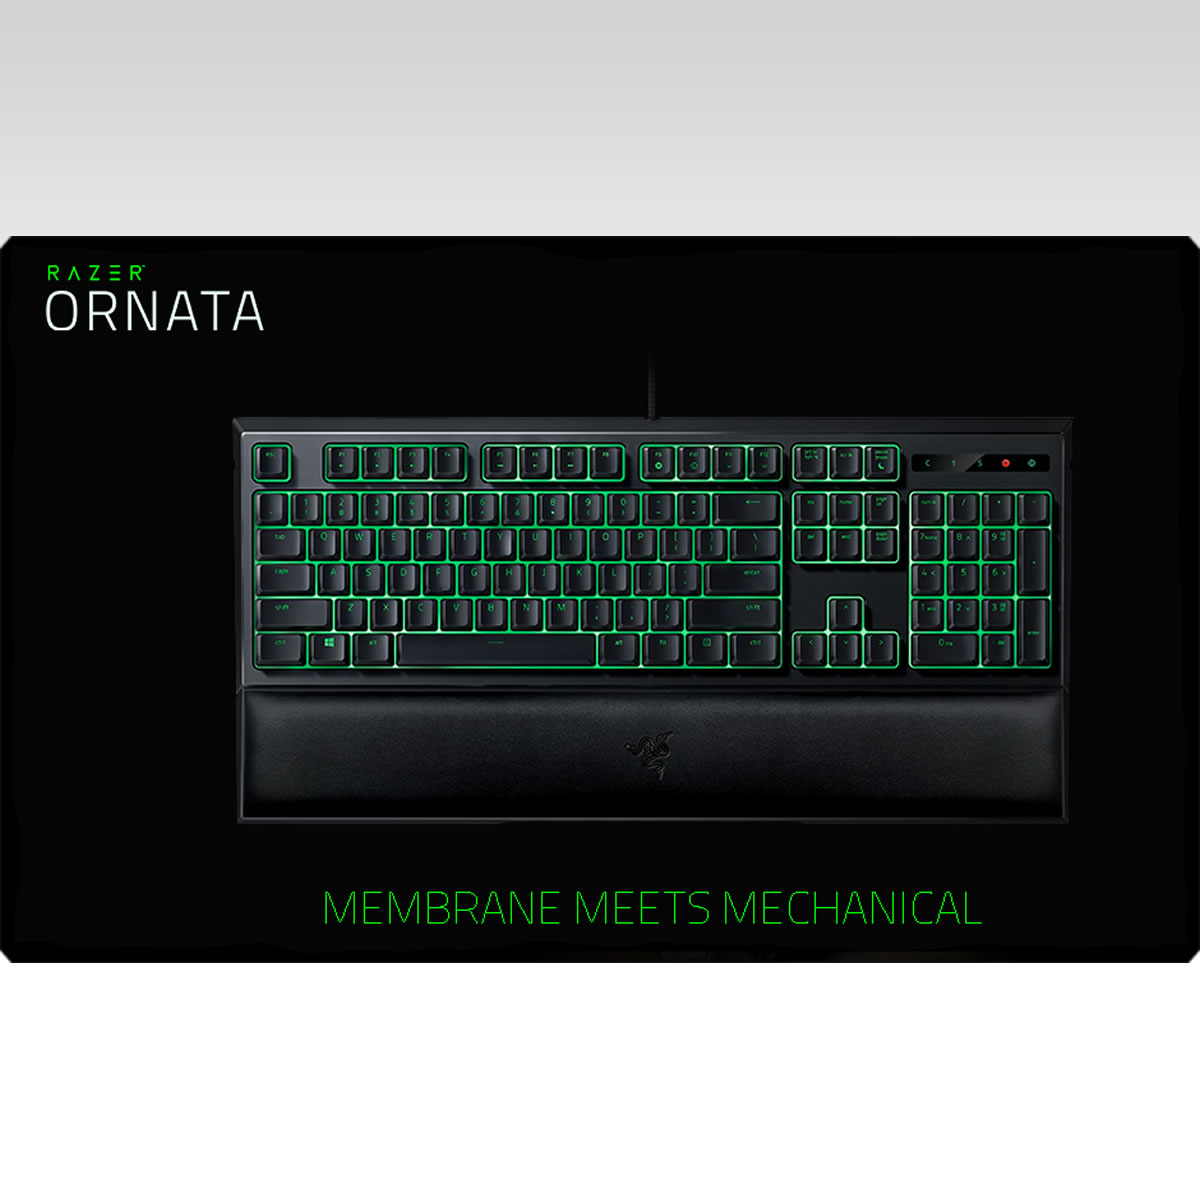 RAZER - ORNATA KEYBOARD [GR] RZ03-02042400-R3P1 (PC)